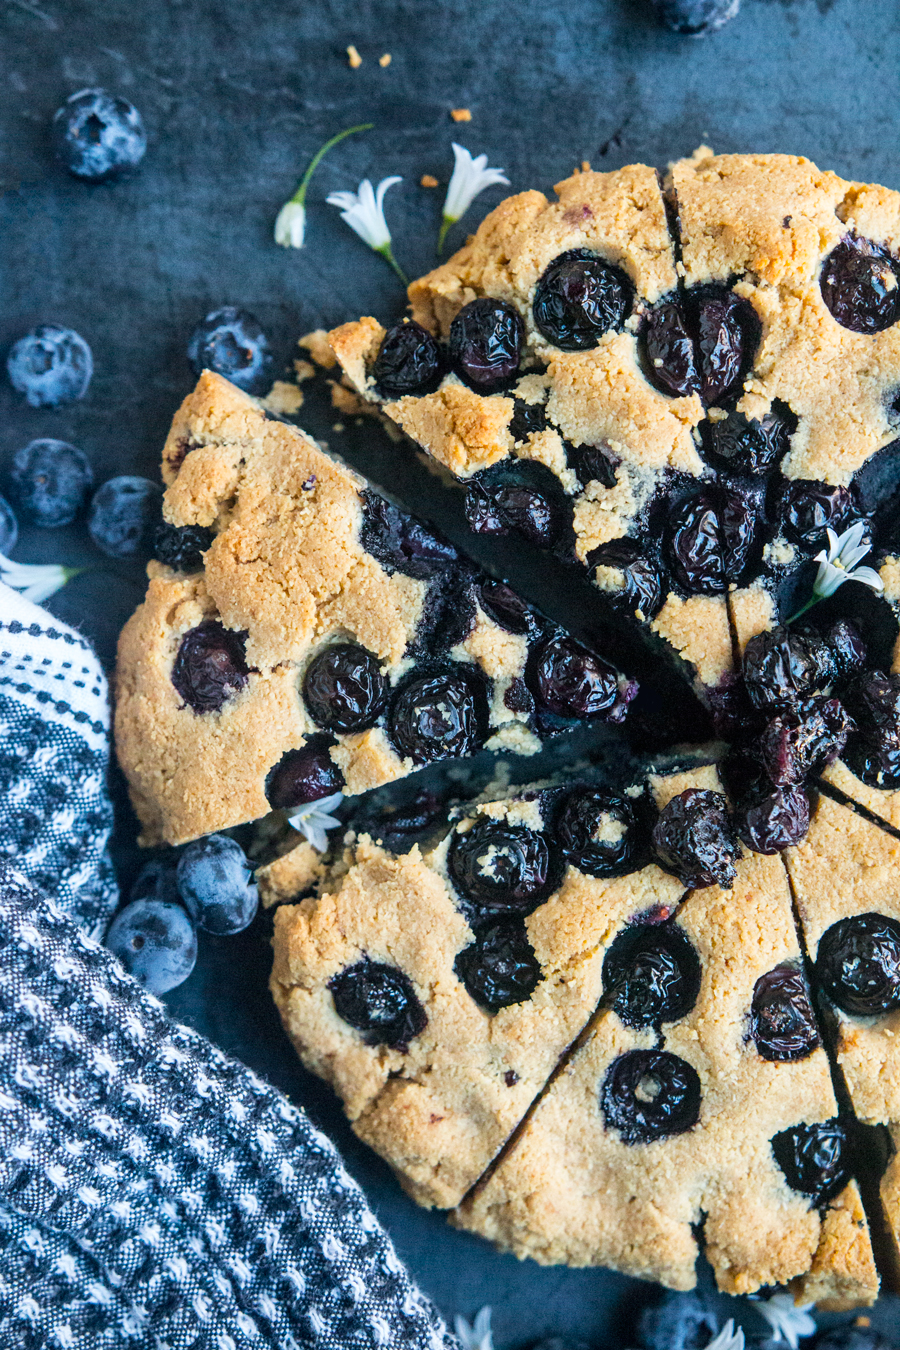 How to snack like a low-carb pro? Meet these Almond Blueberry Scones, made with nuts and eggs, plus the best-tasting ghee and stevia!